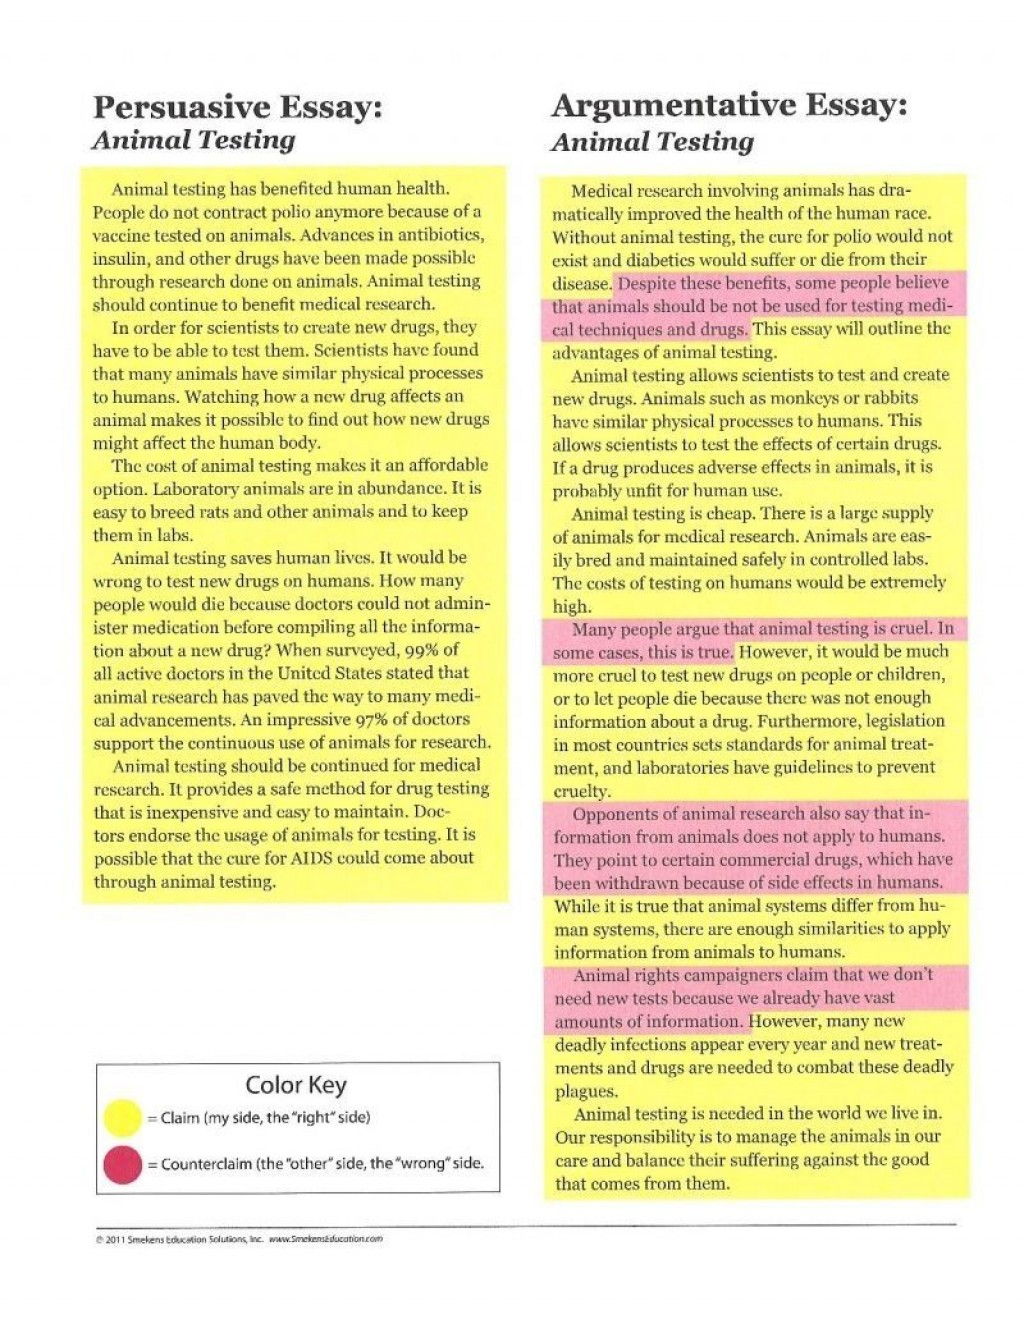 012 Essay Example Animal Testing Surprising Pro Good Titles For Persuasive Large